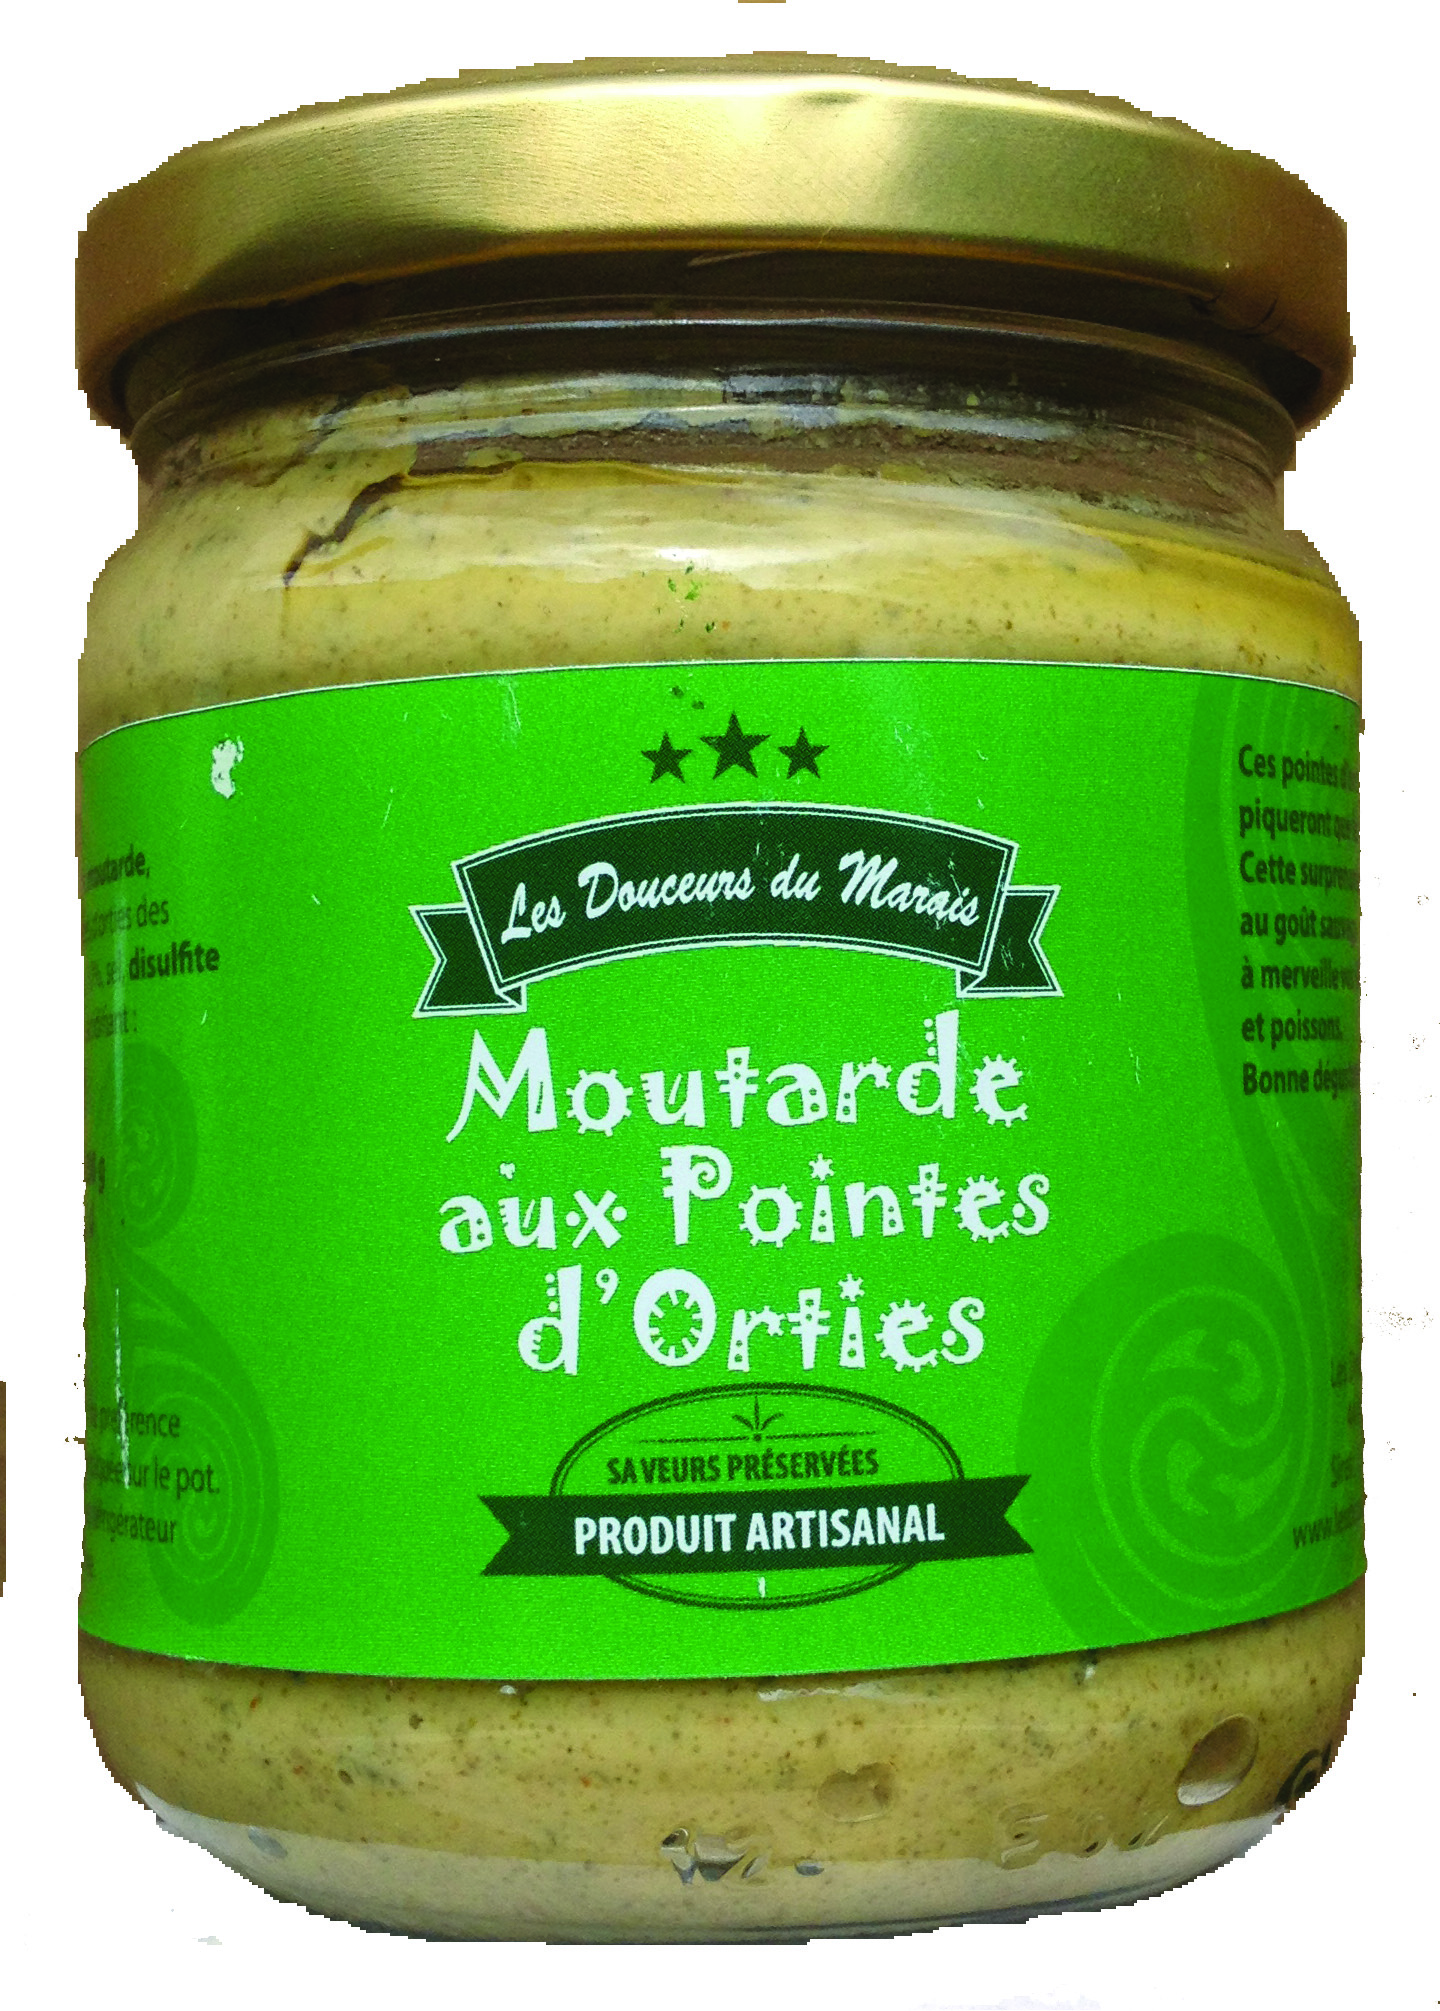 moutarde aux pointes d'orties